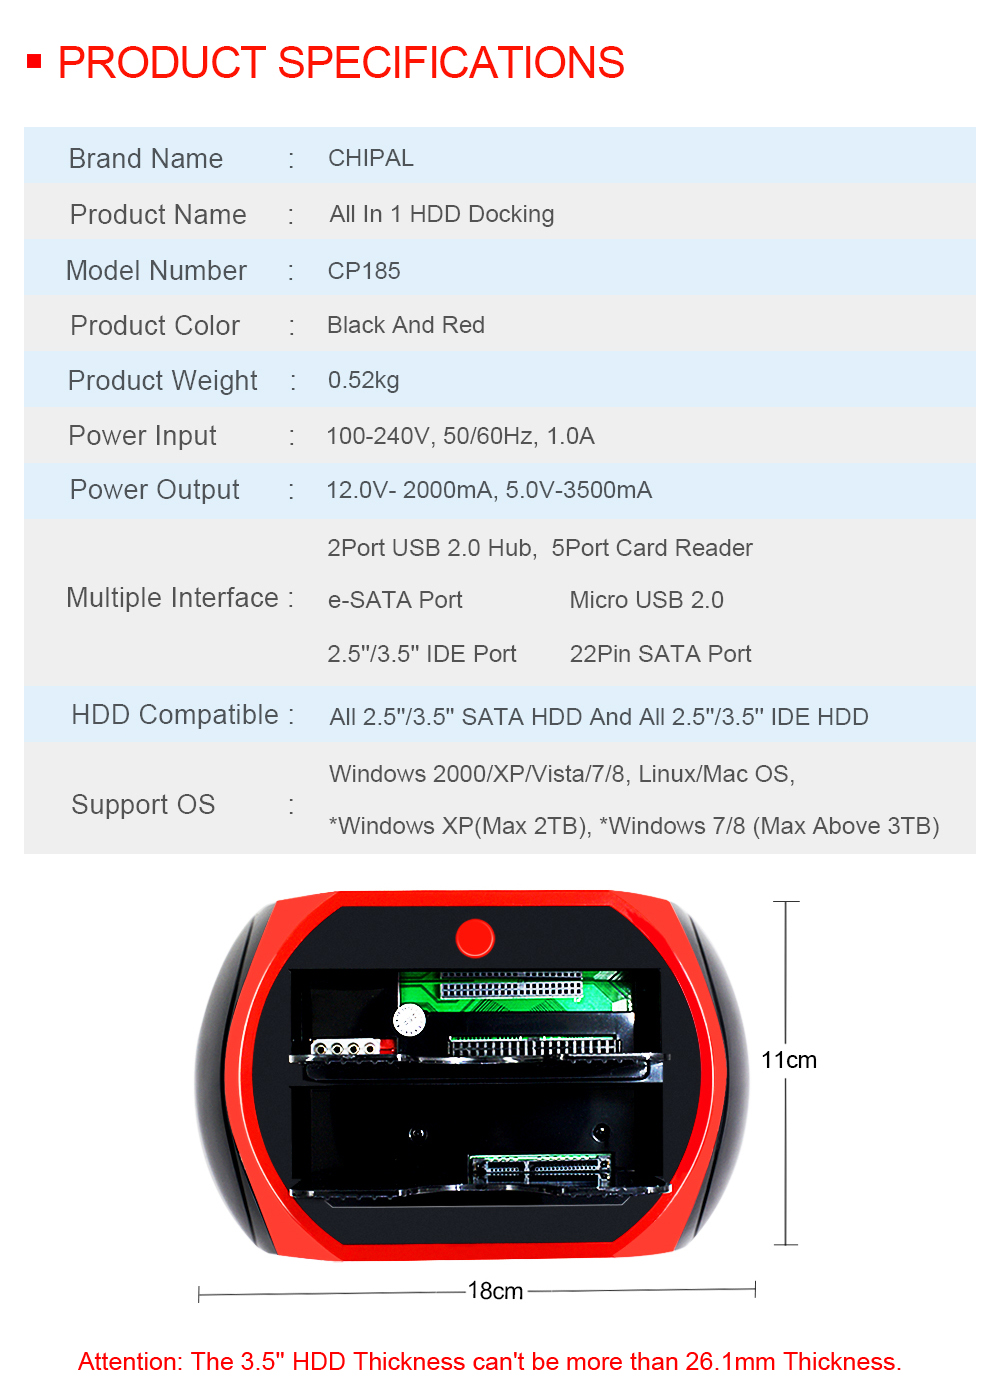 Product Specifications-